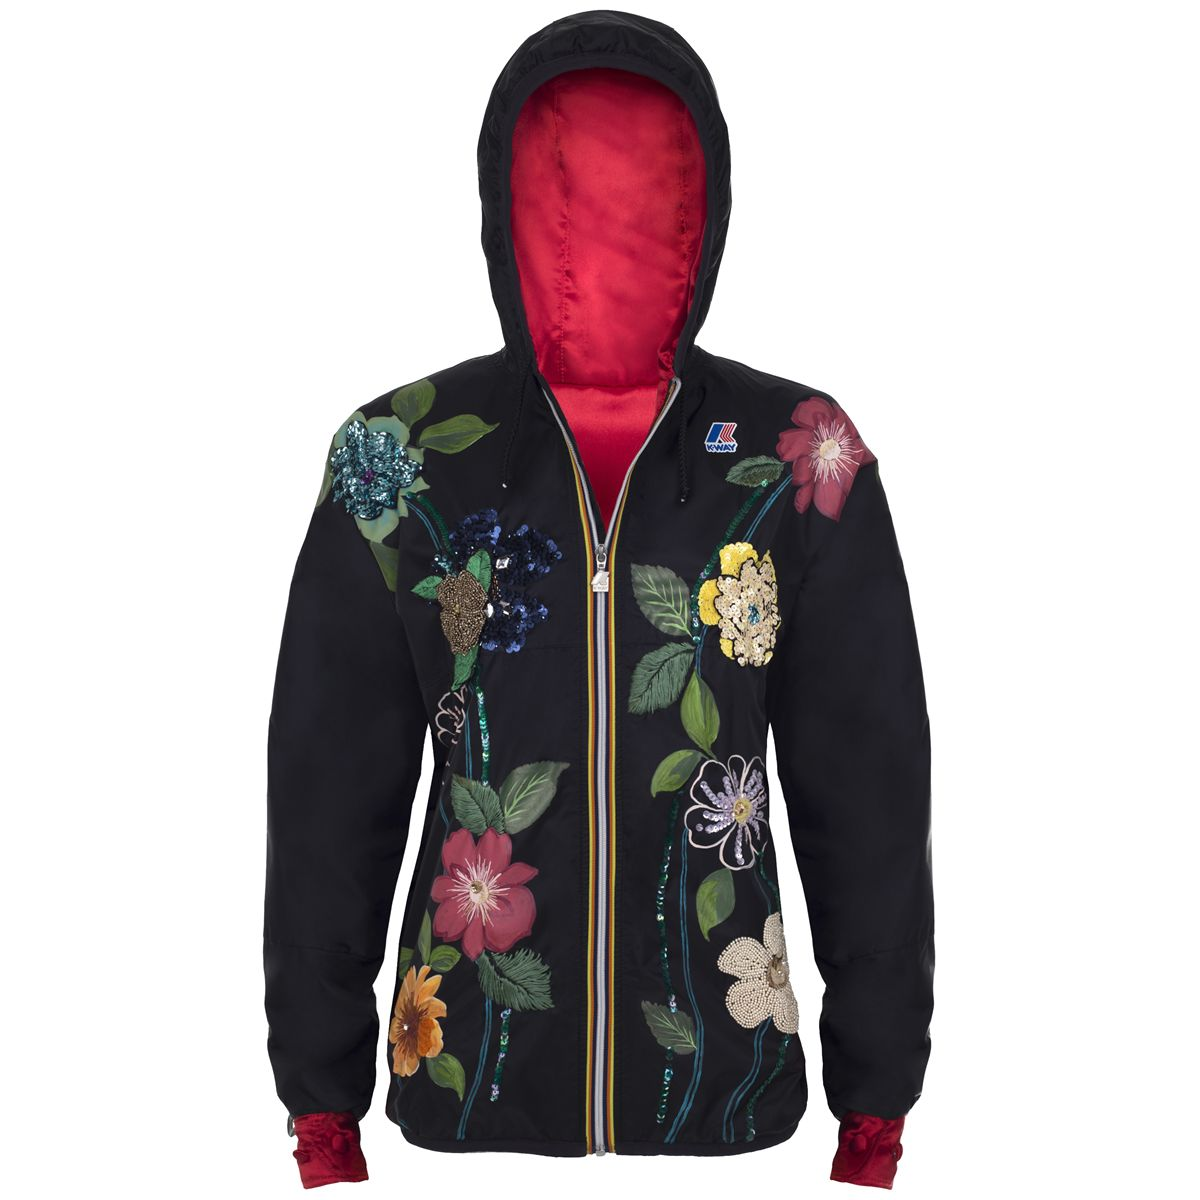 Giubbotto impermeabile K-way donna REMIX CLAUDETTE PAINTED FLOWER-K0067Q0